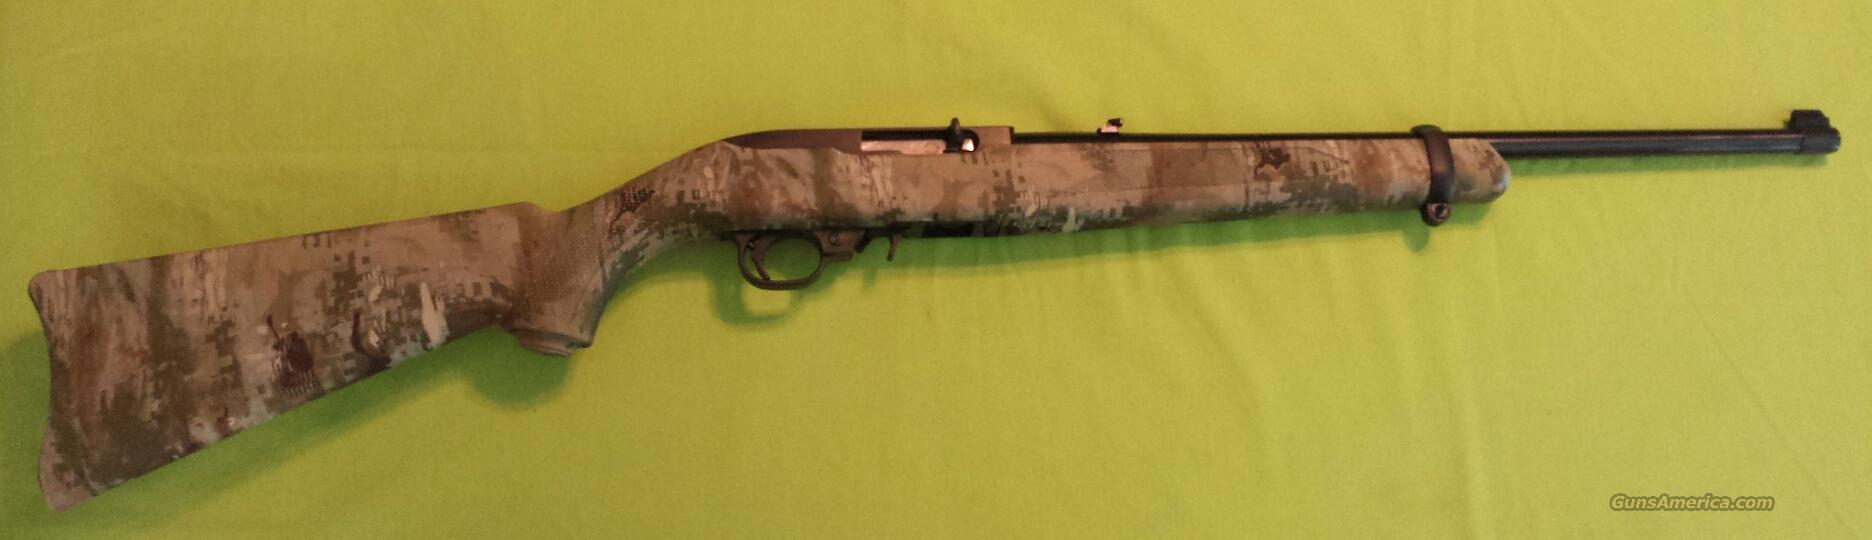 RUGER 10/22 CARBINE .22LR 22 LR BLUED WOLF CAMO  Guns > Rifles > Ruger Rifles > 10-22